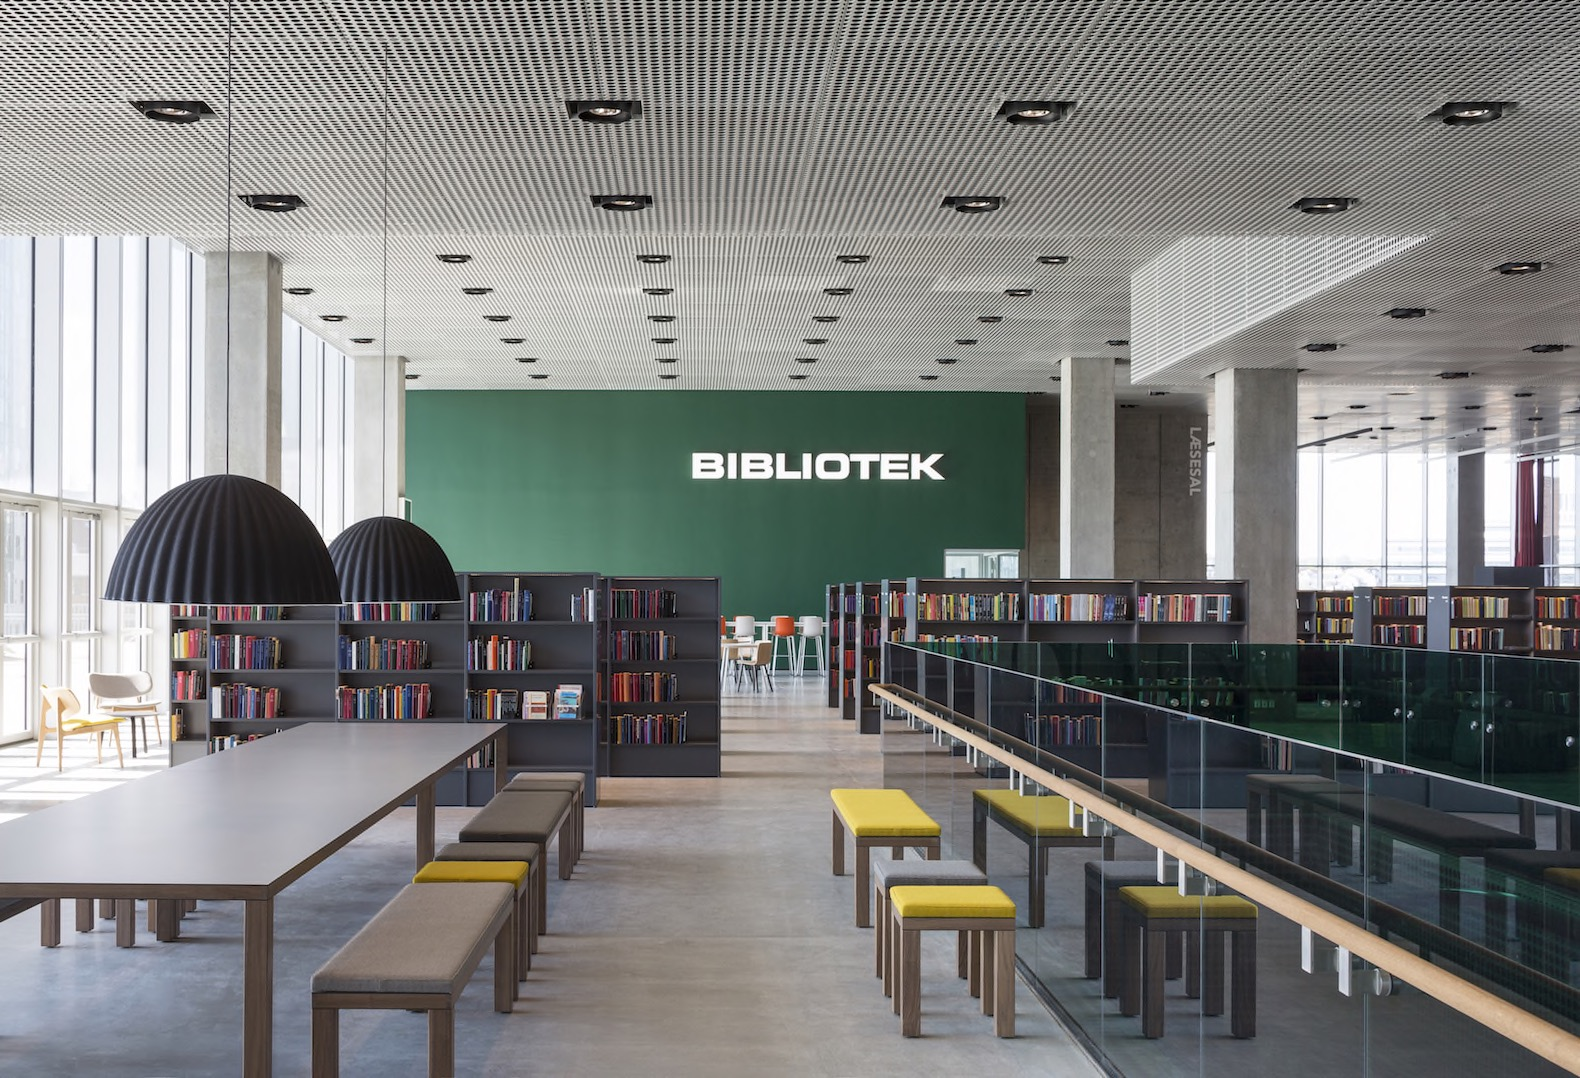 An architectural shot of the modern and colorful interior of the Dokk1 library.